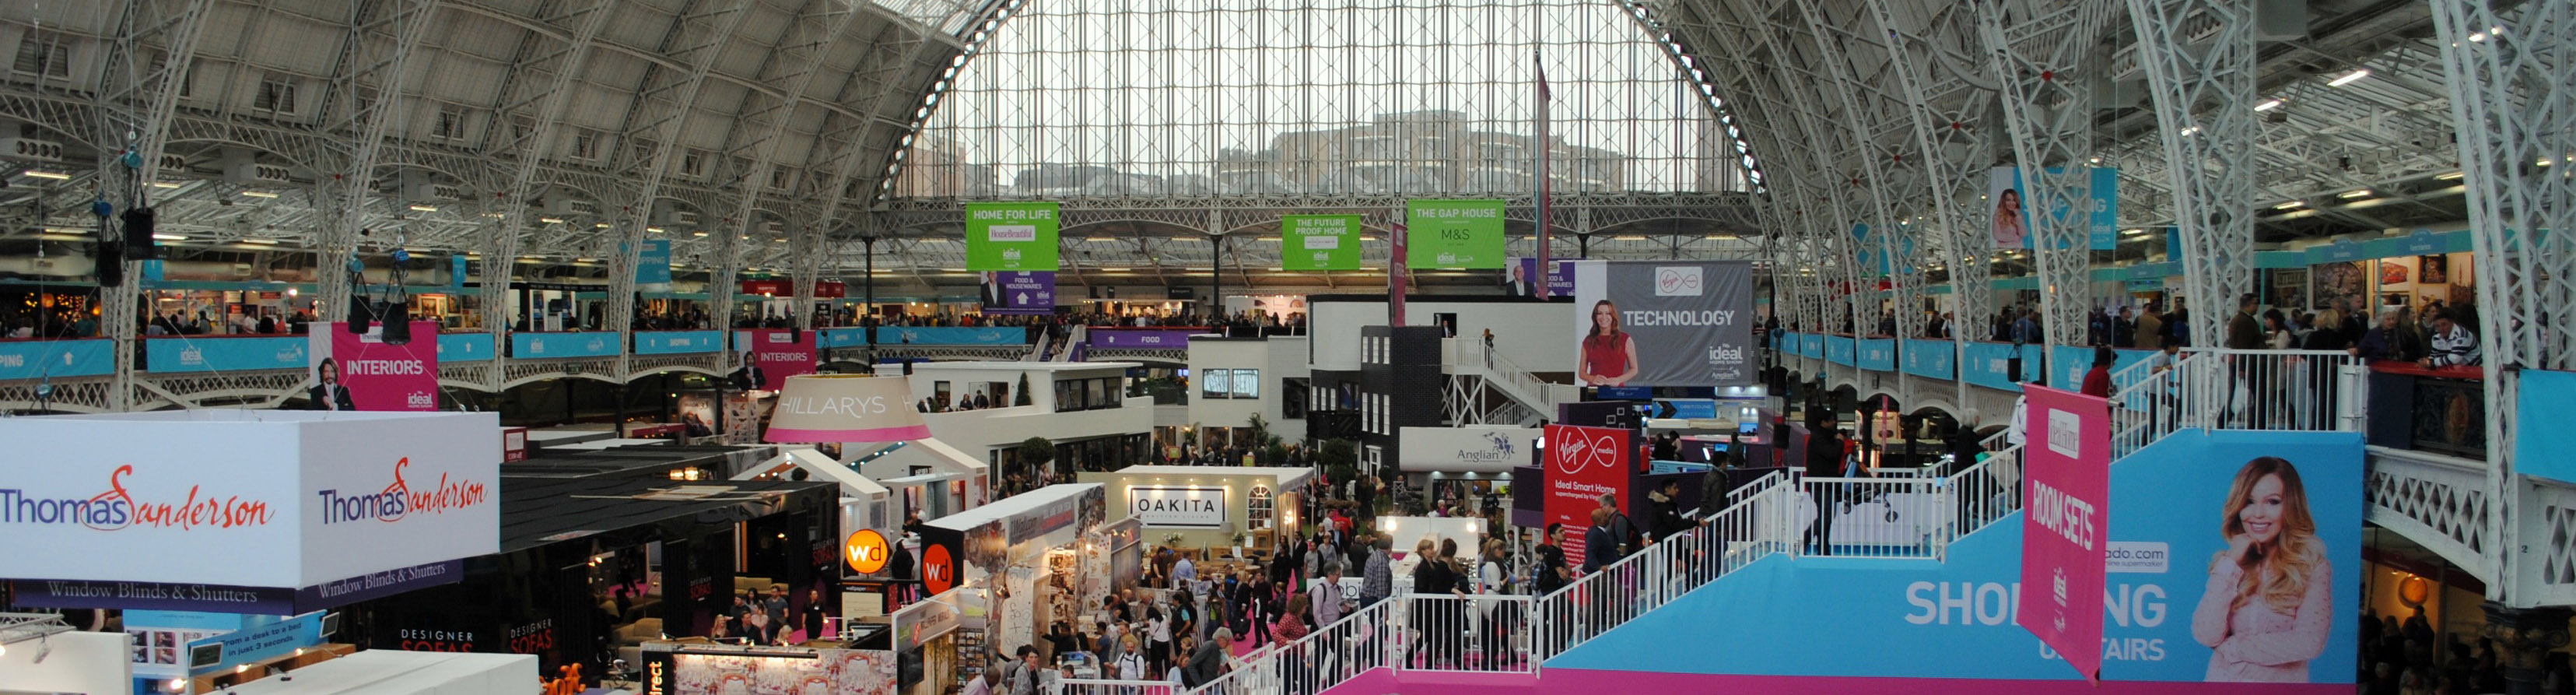 Av Tvs Led Screen Hire For Ideal Home Show Christmas 2019 Olympia London Yslv